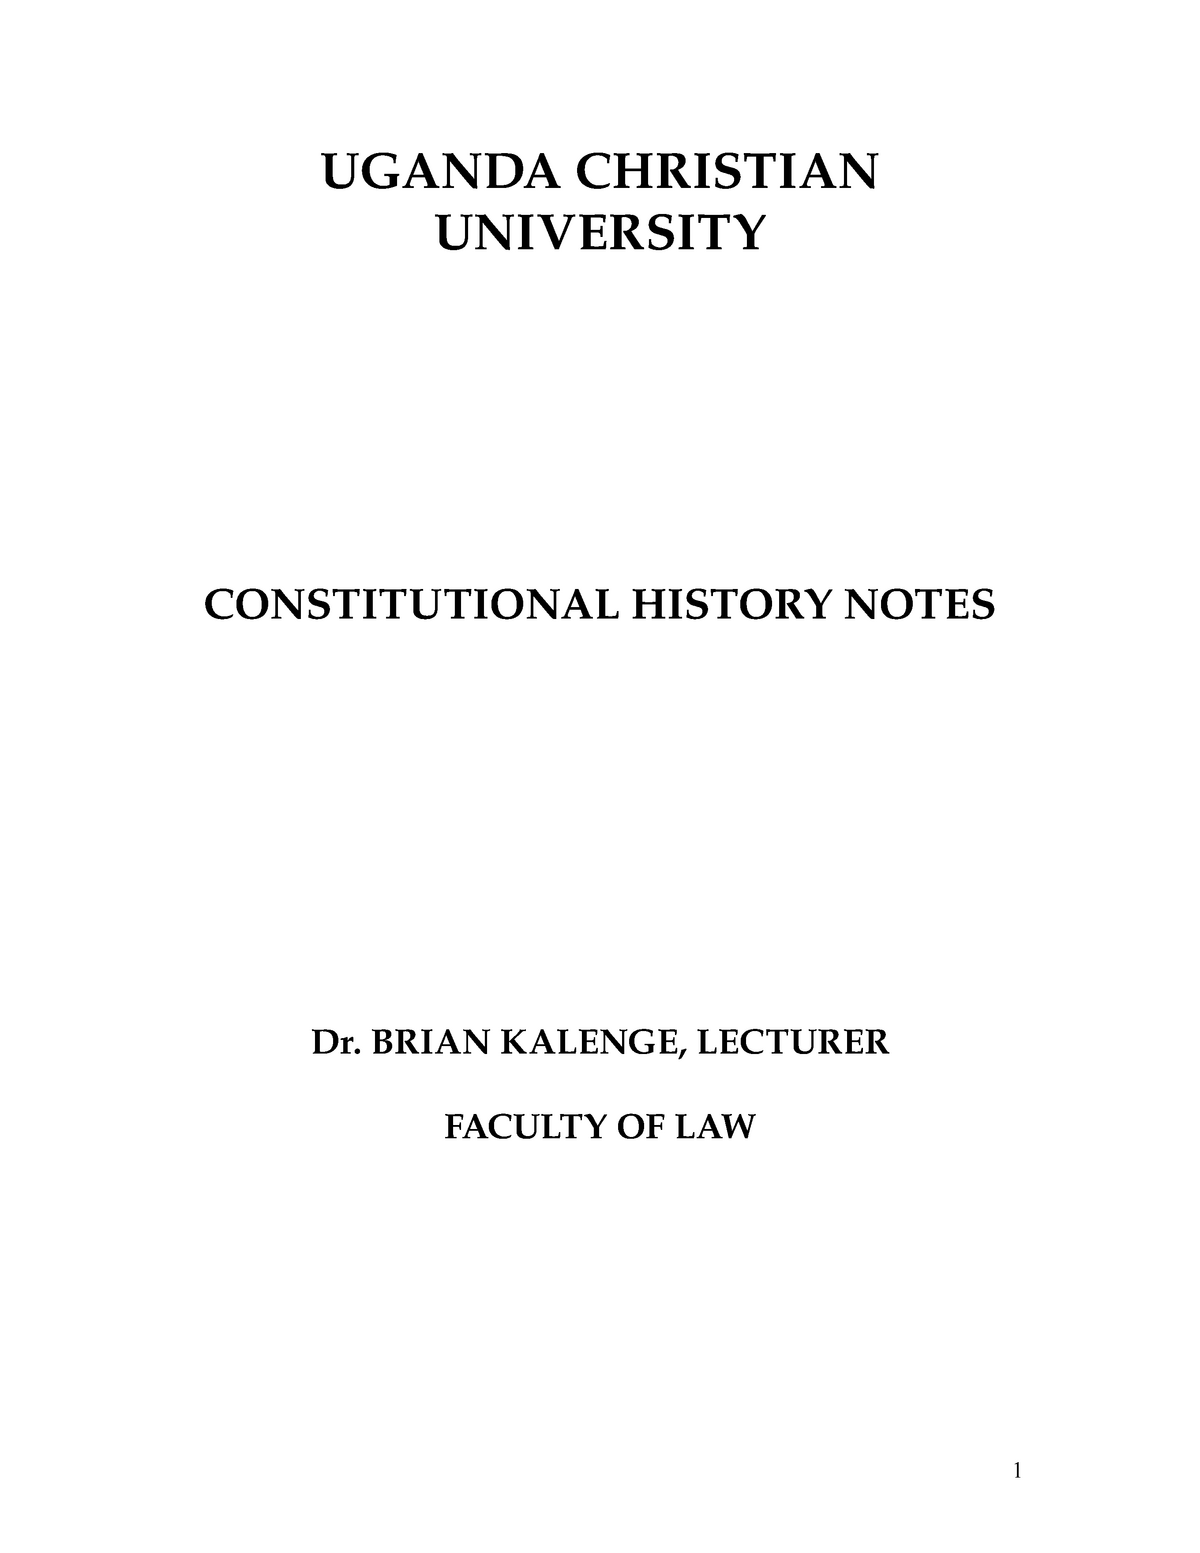 Constitutional History Notes Part I- UCU - BACHELOR OF LAW